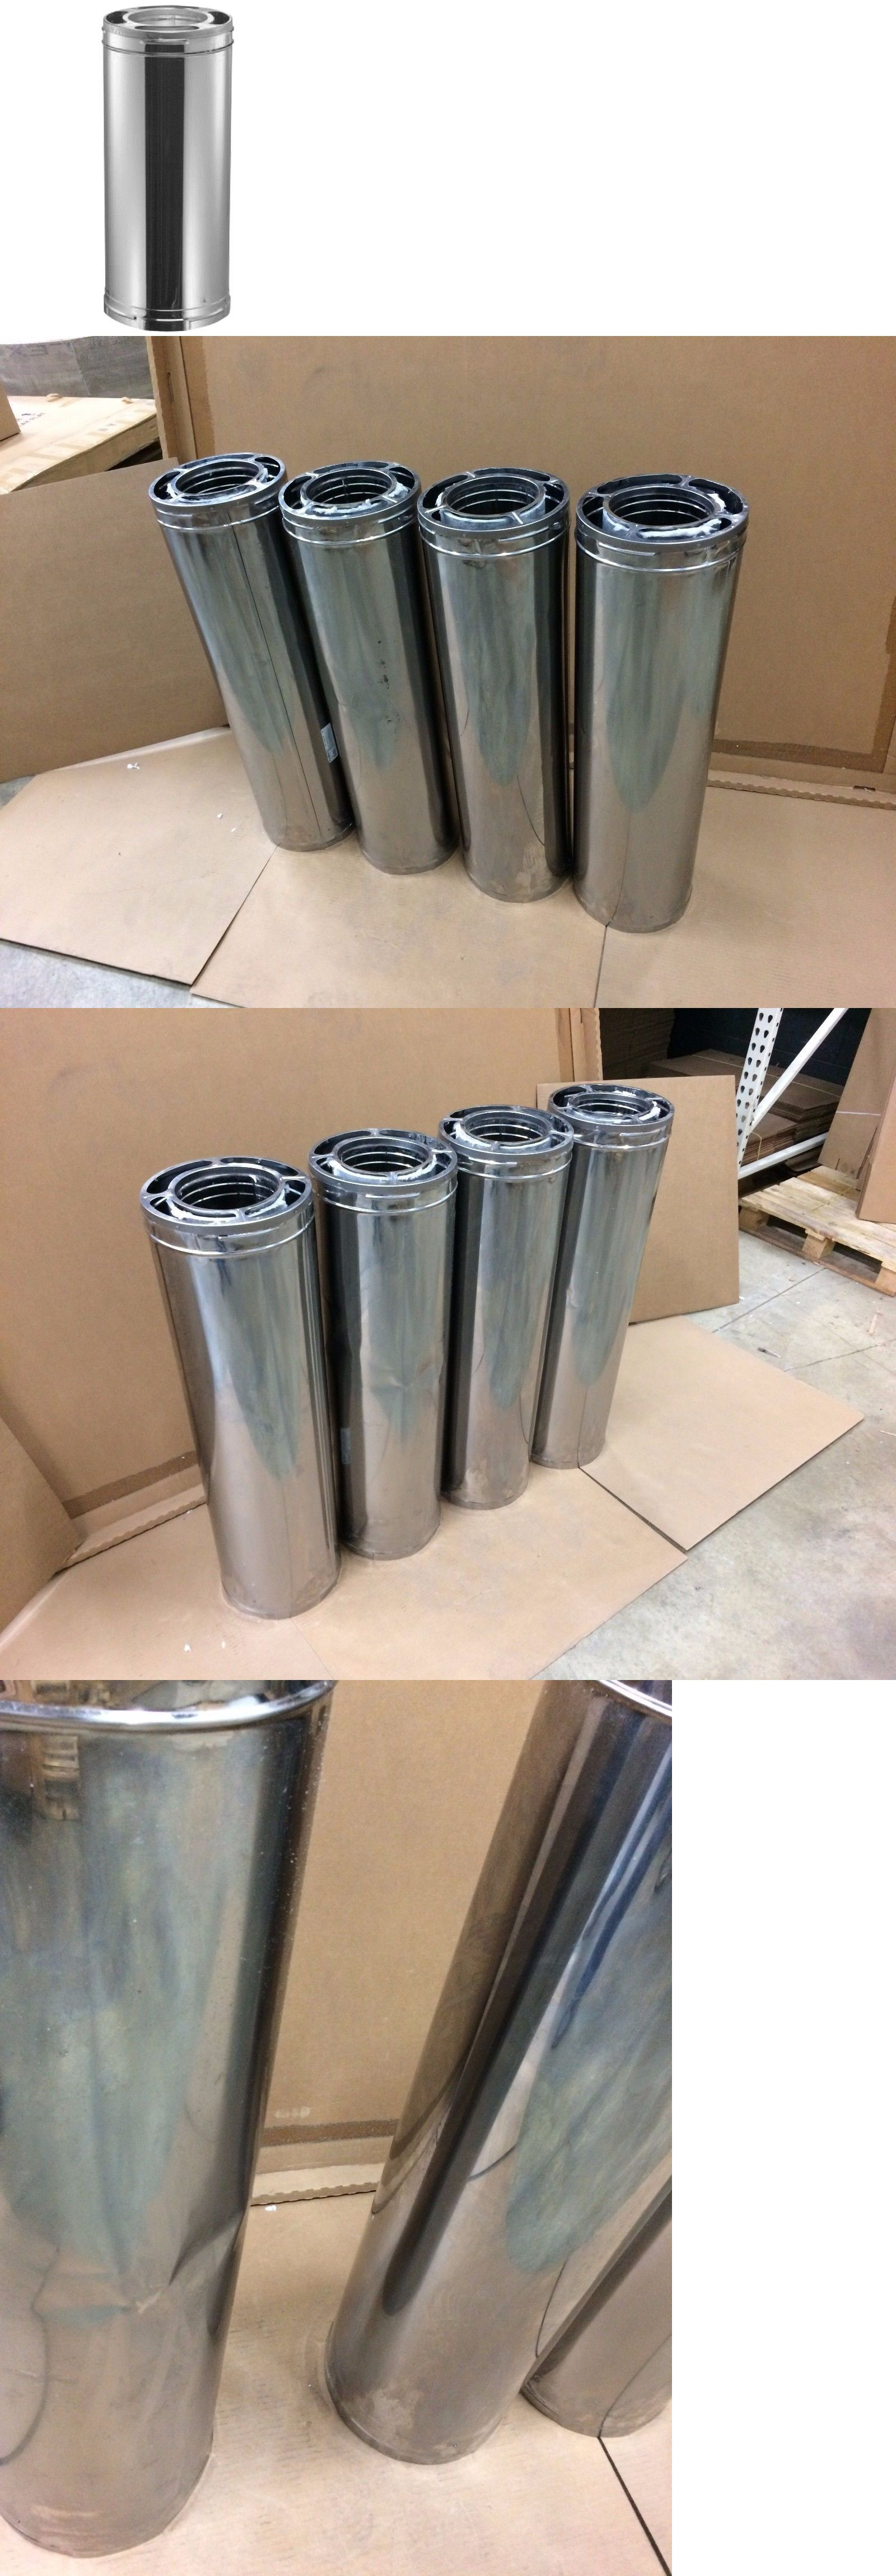 Stove and Chimney Pipes 175803: 6 Duraplus Stainless Steel Chimney ...